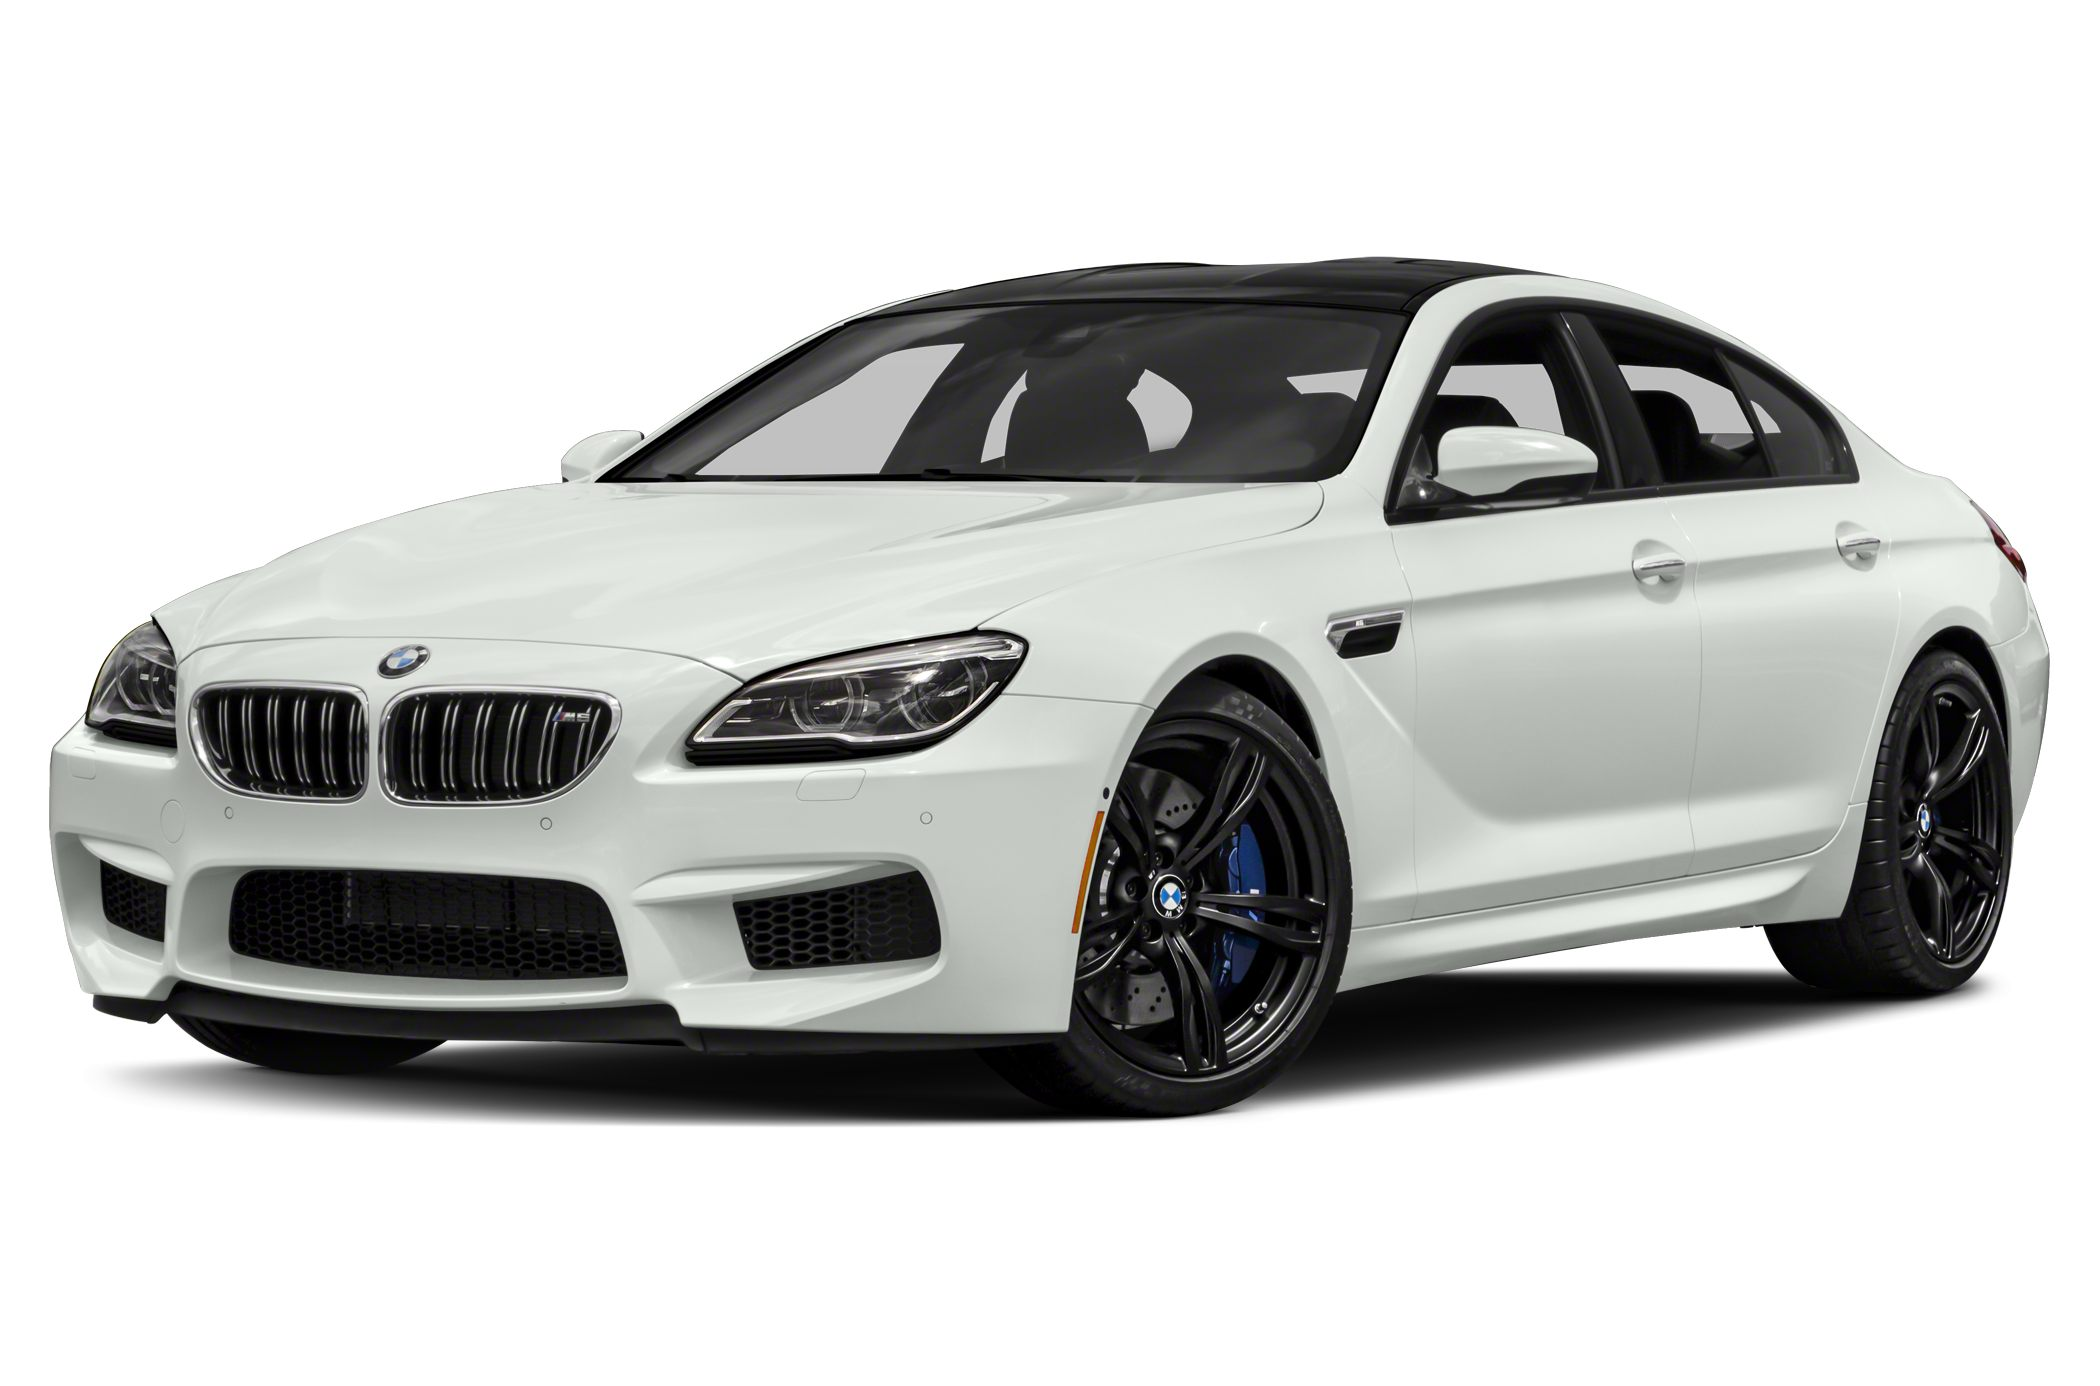 2014 BMW M6 Gran Coupe: Detroit 2013 Photo Gallery